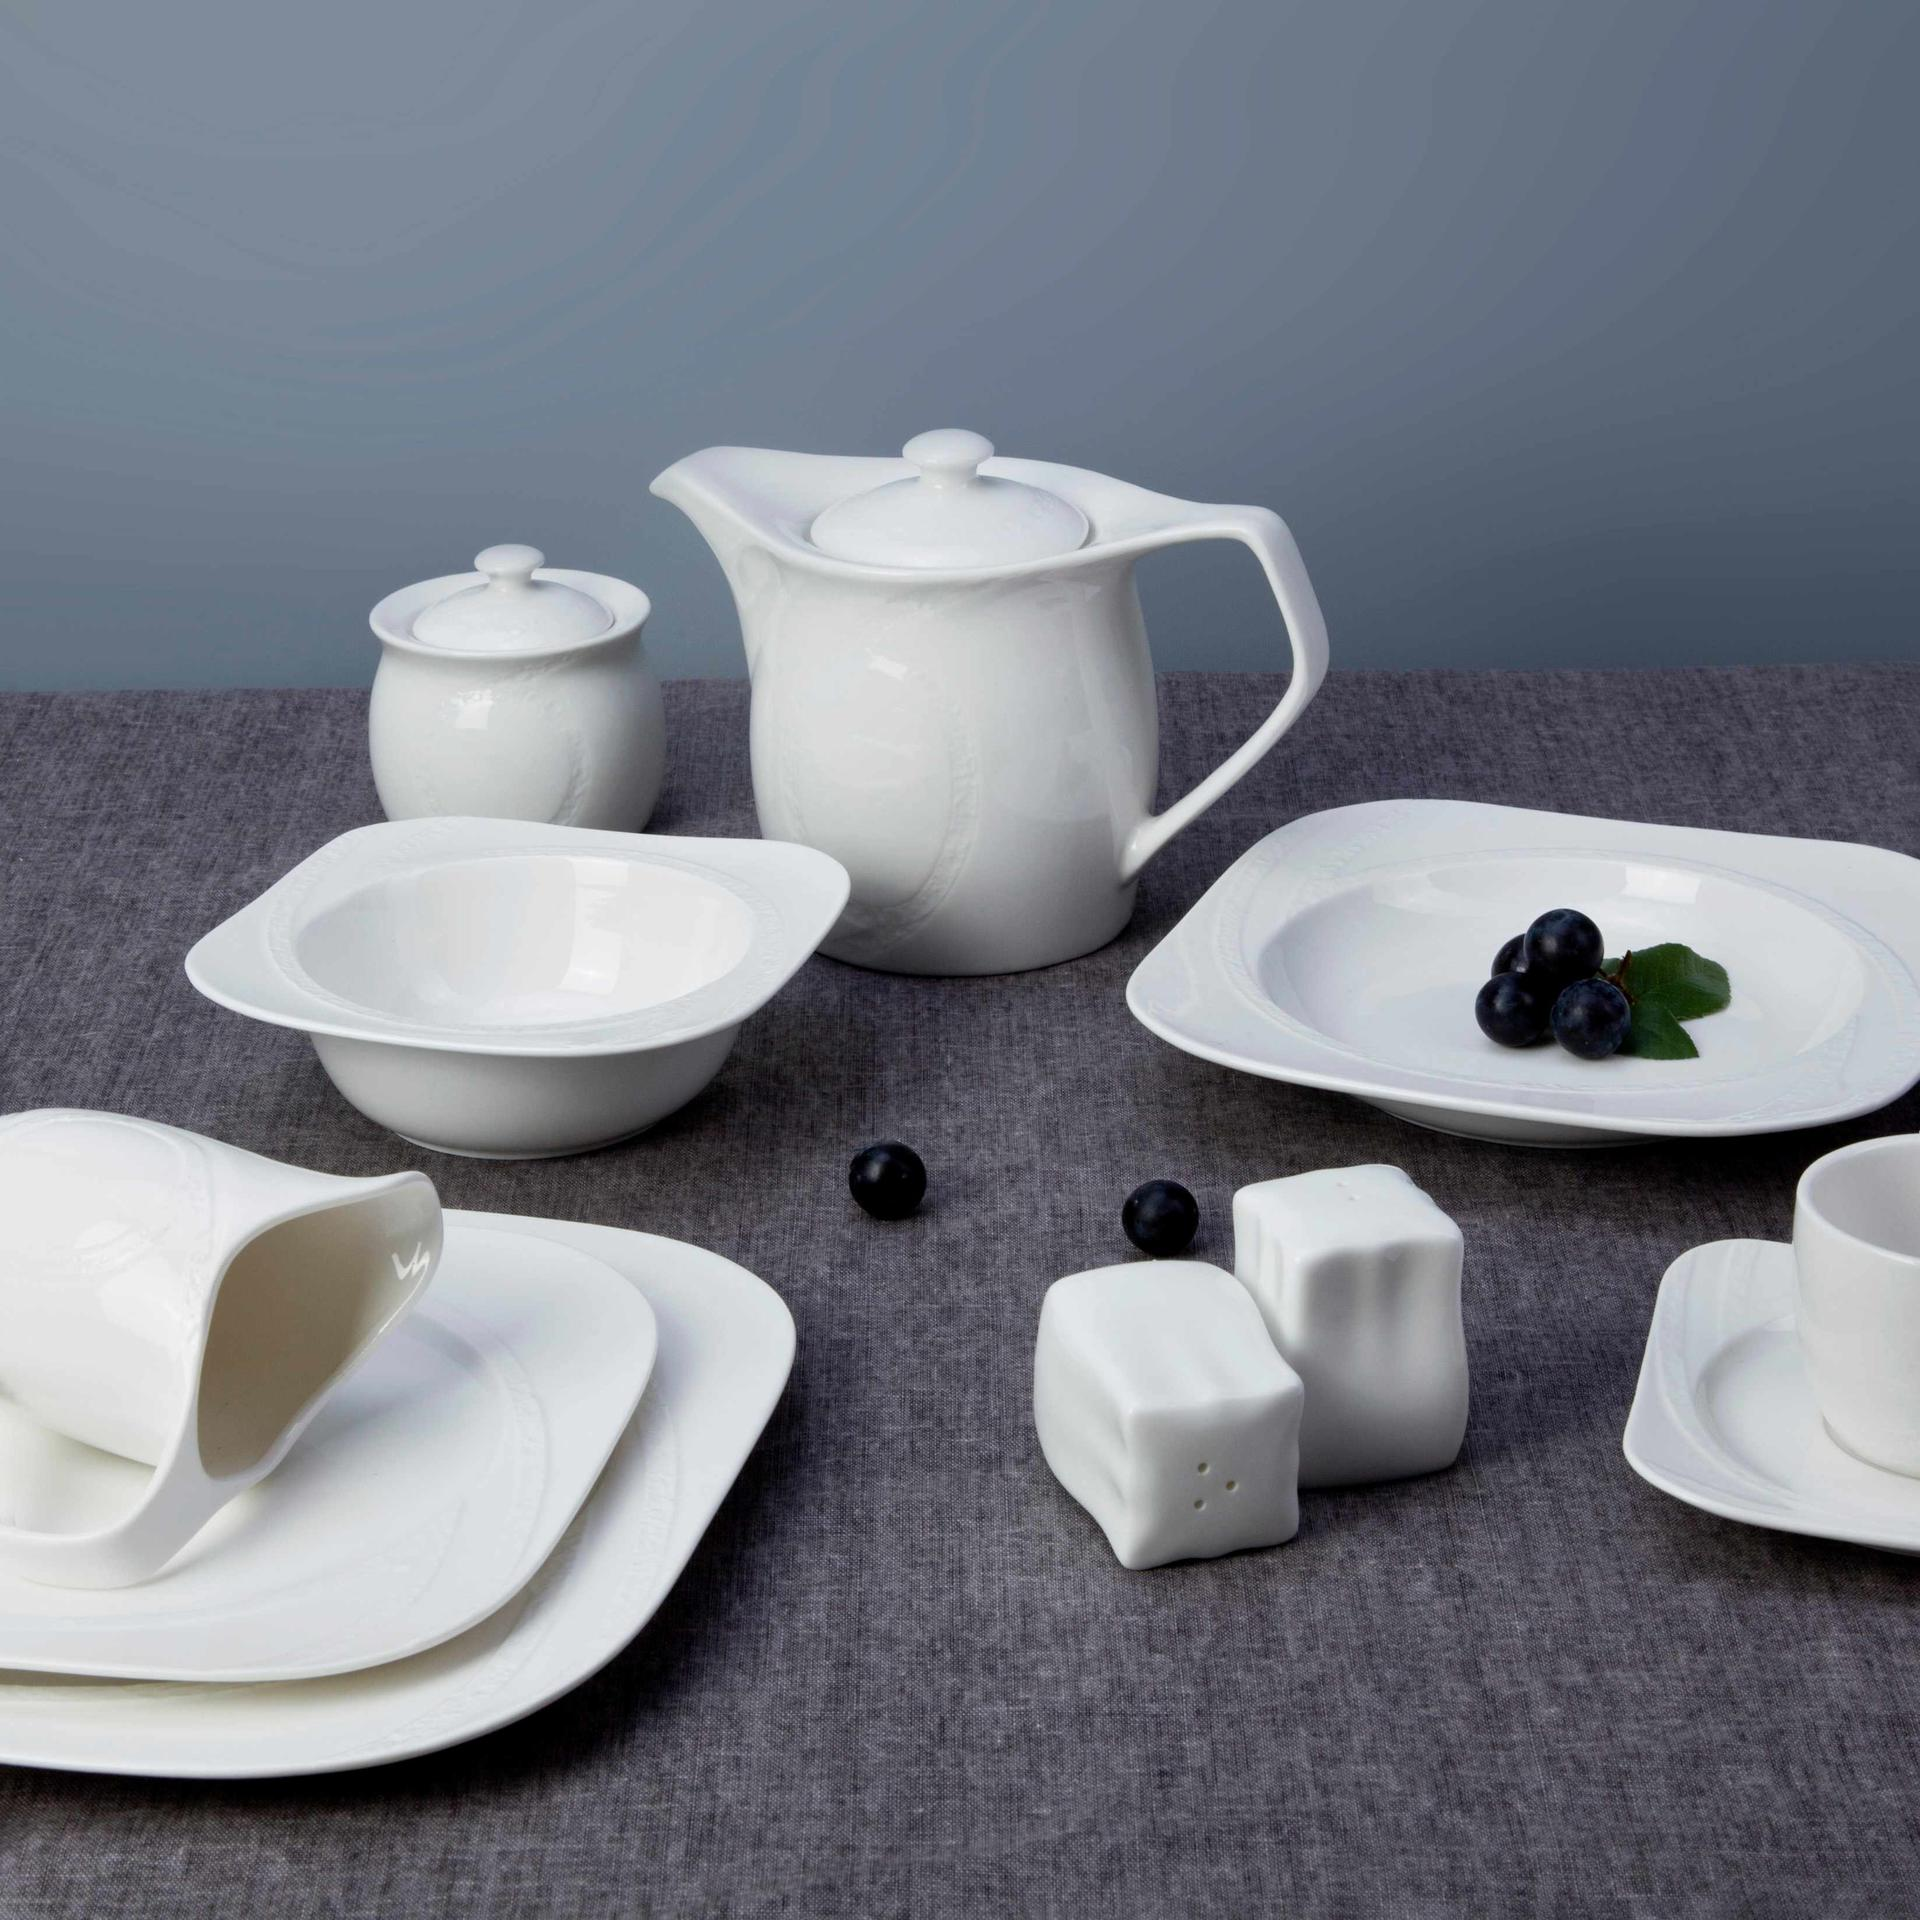 9 Piece Simply white ceramic dinnerware set - TW20